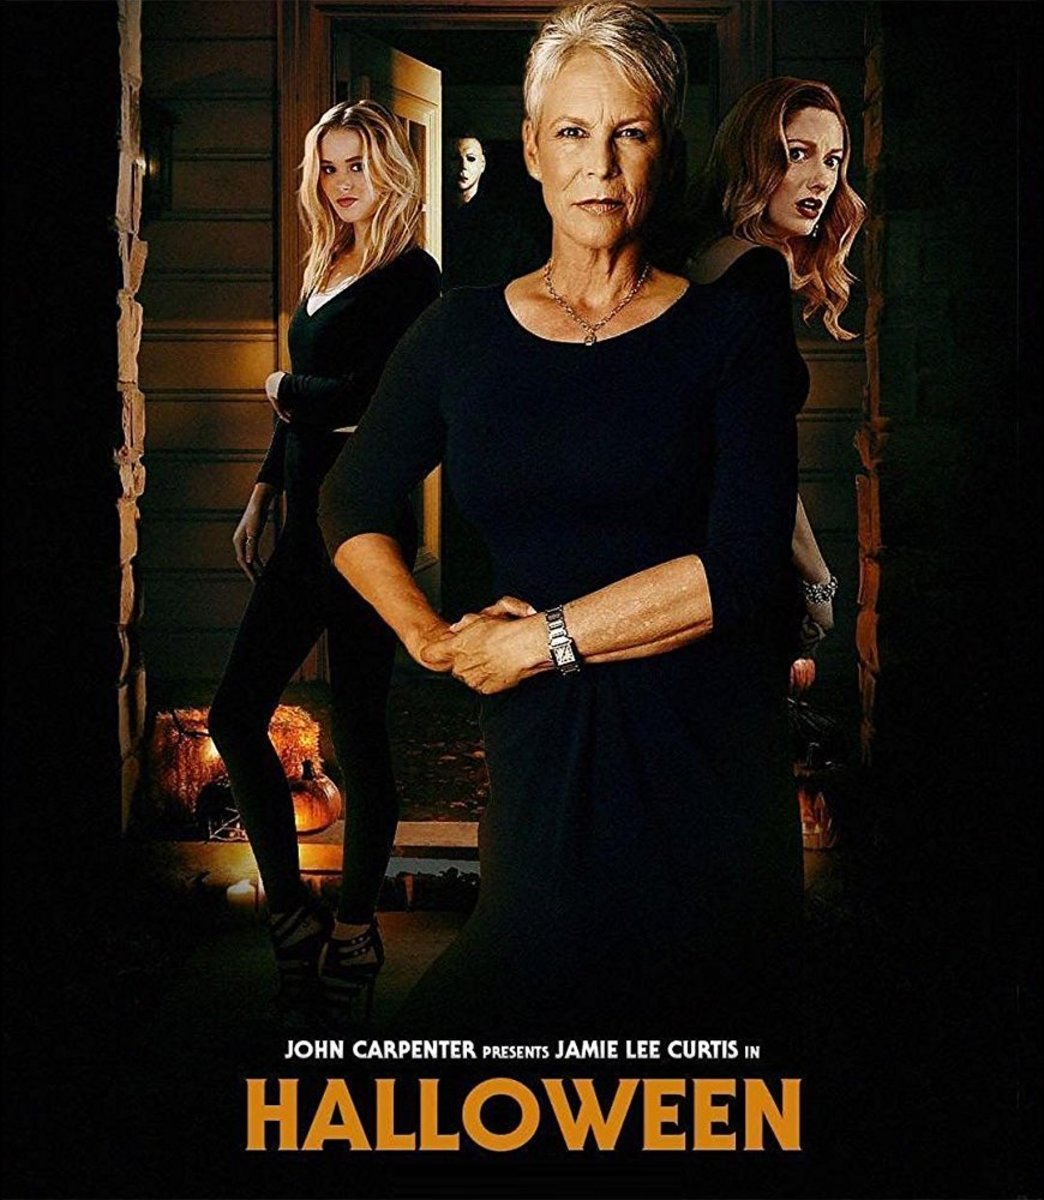 My Review of Halloween (2018)